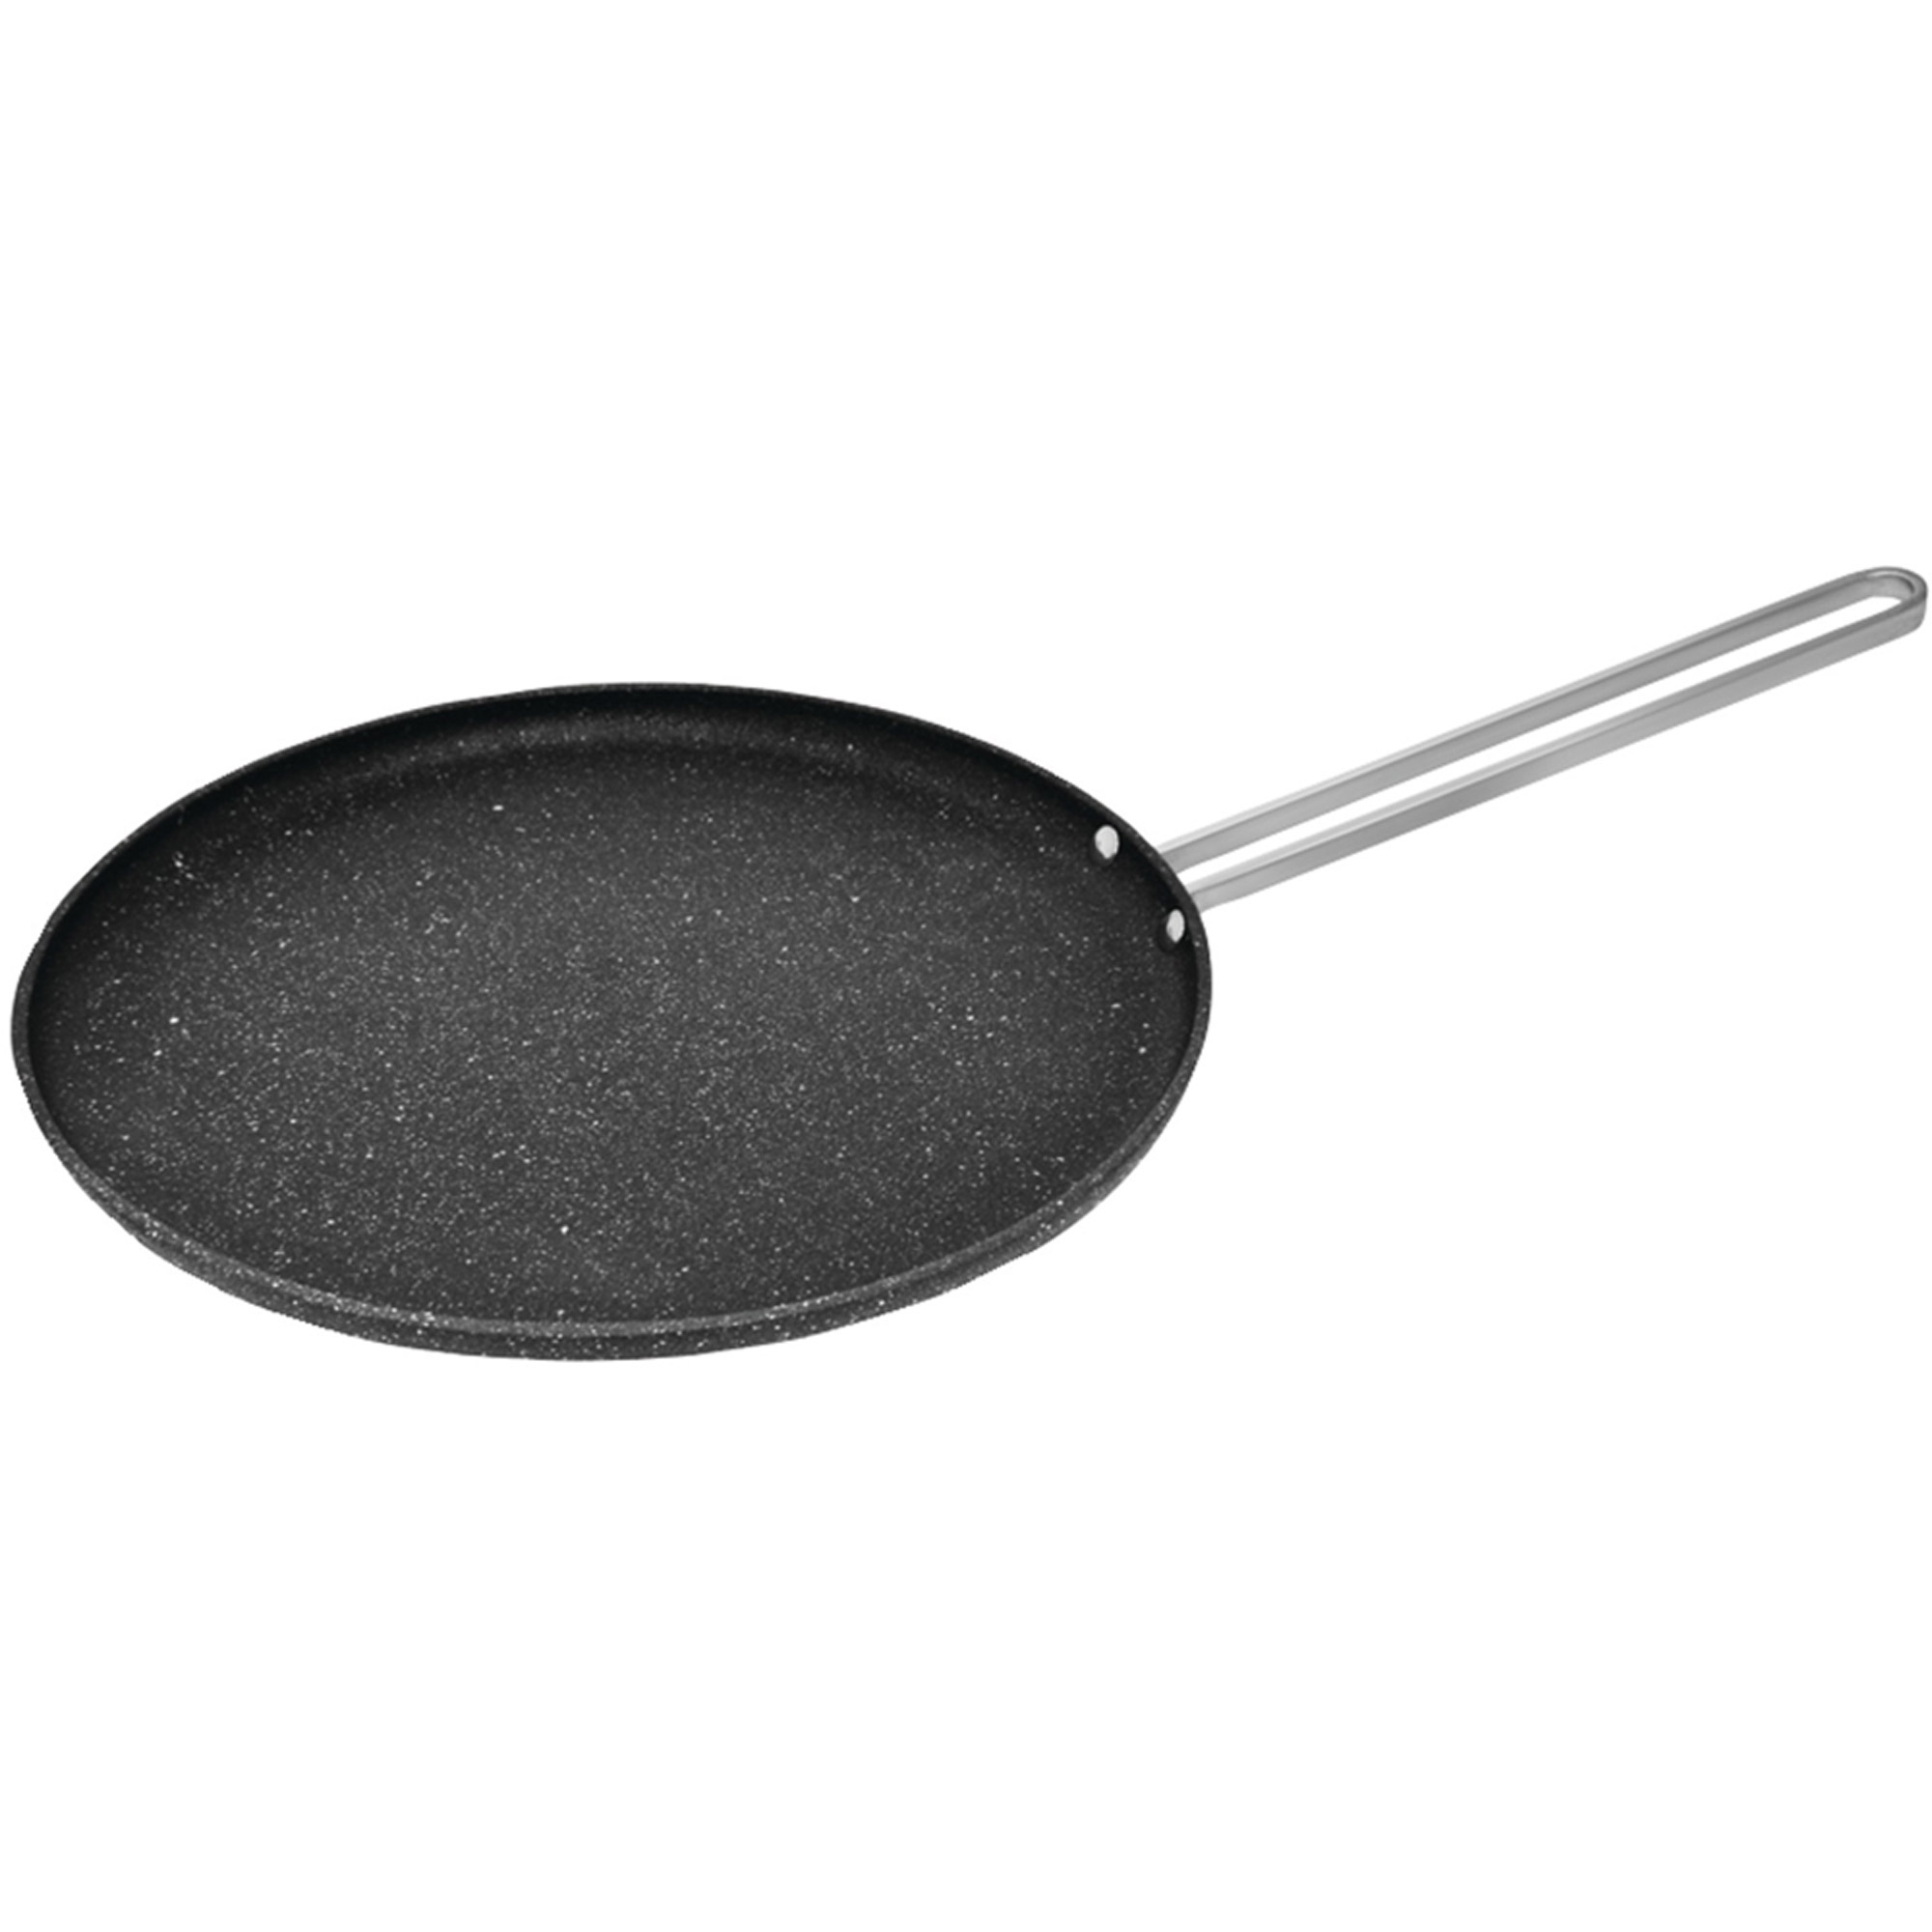 Communication on this topic: This Cast Iron Cookware Set Is 47 , this-cast-iron-cookware-set-is-47/